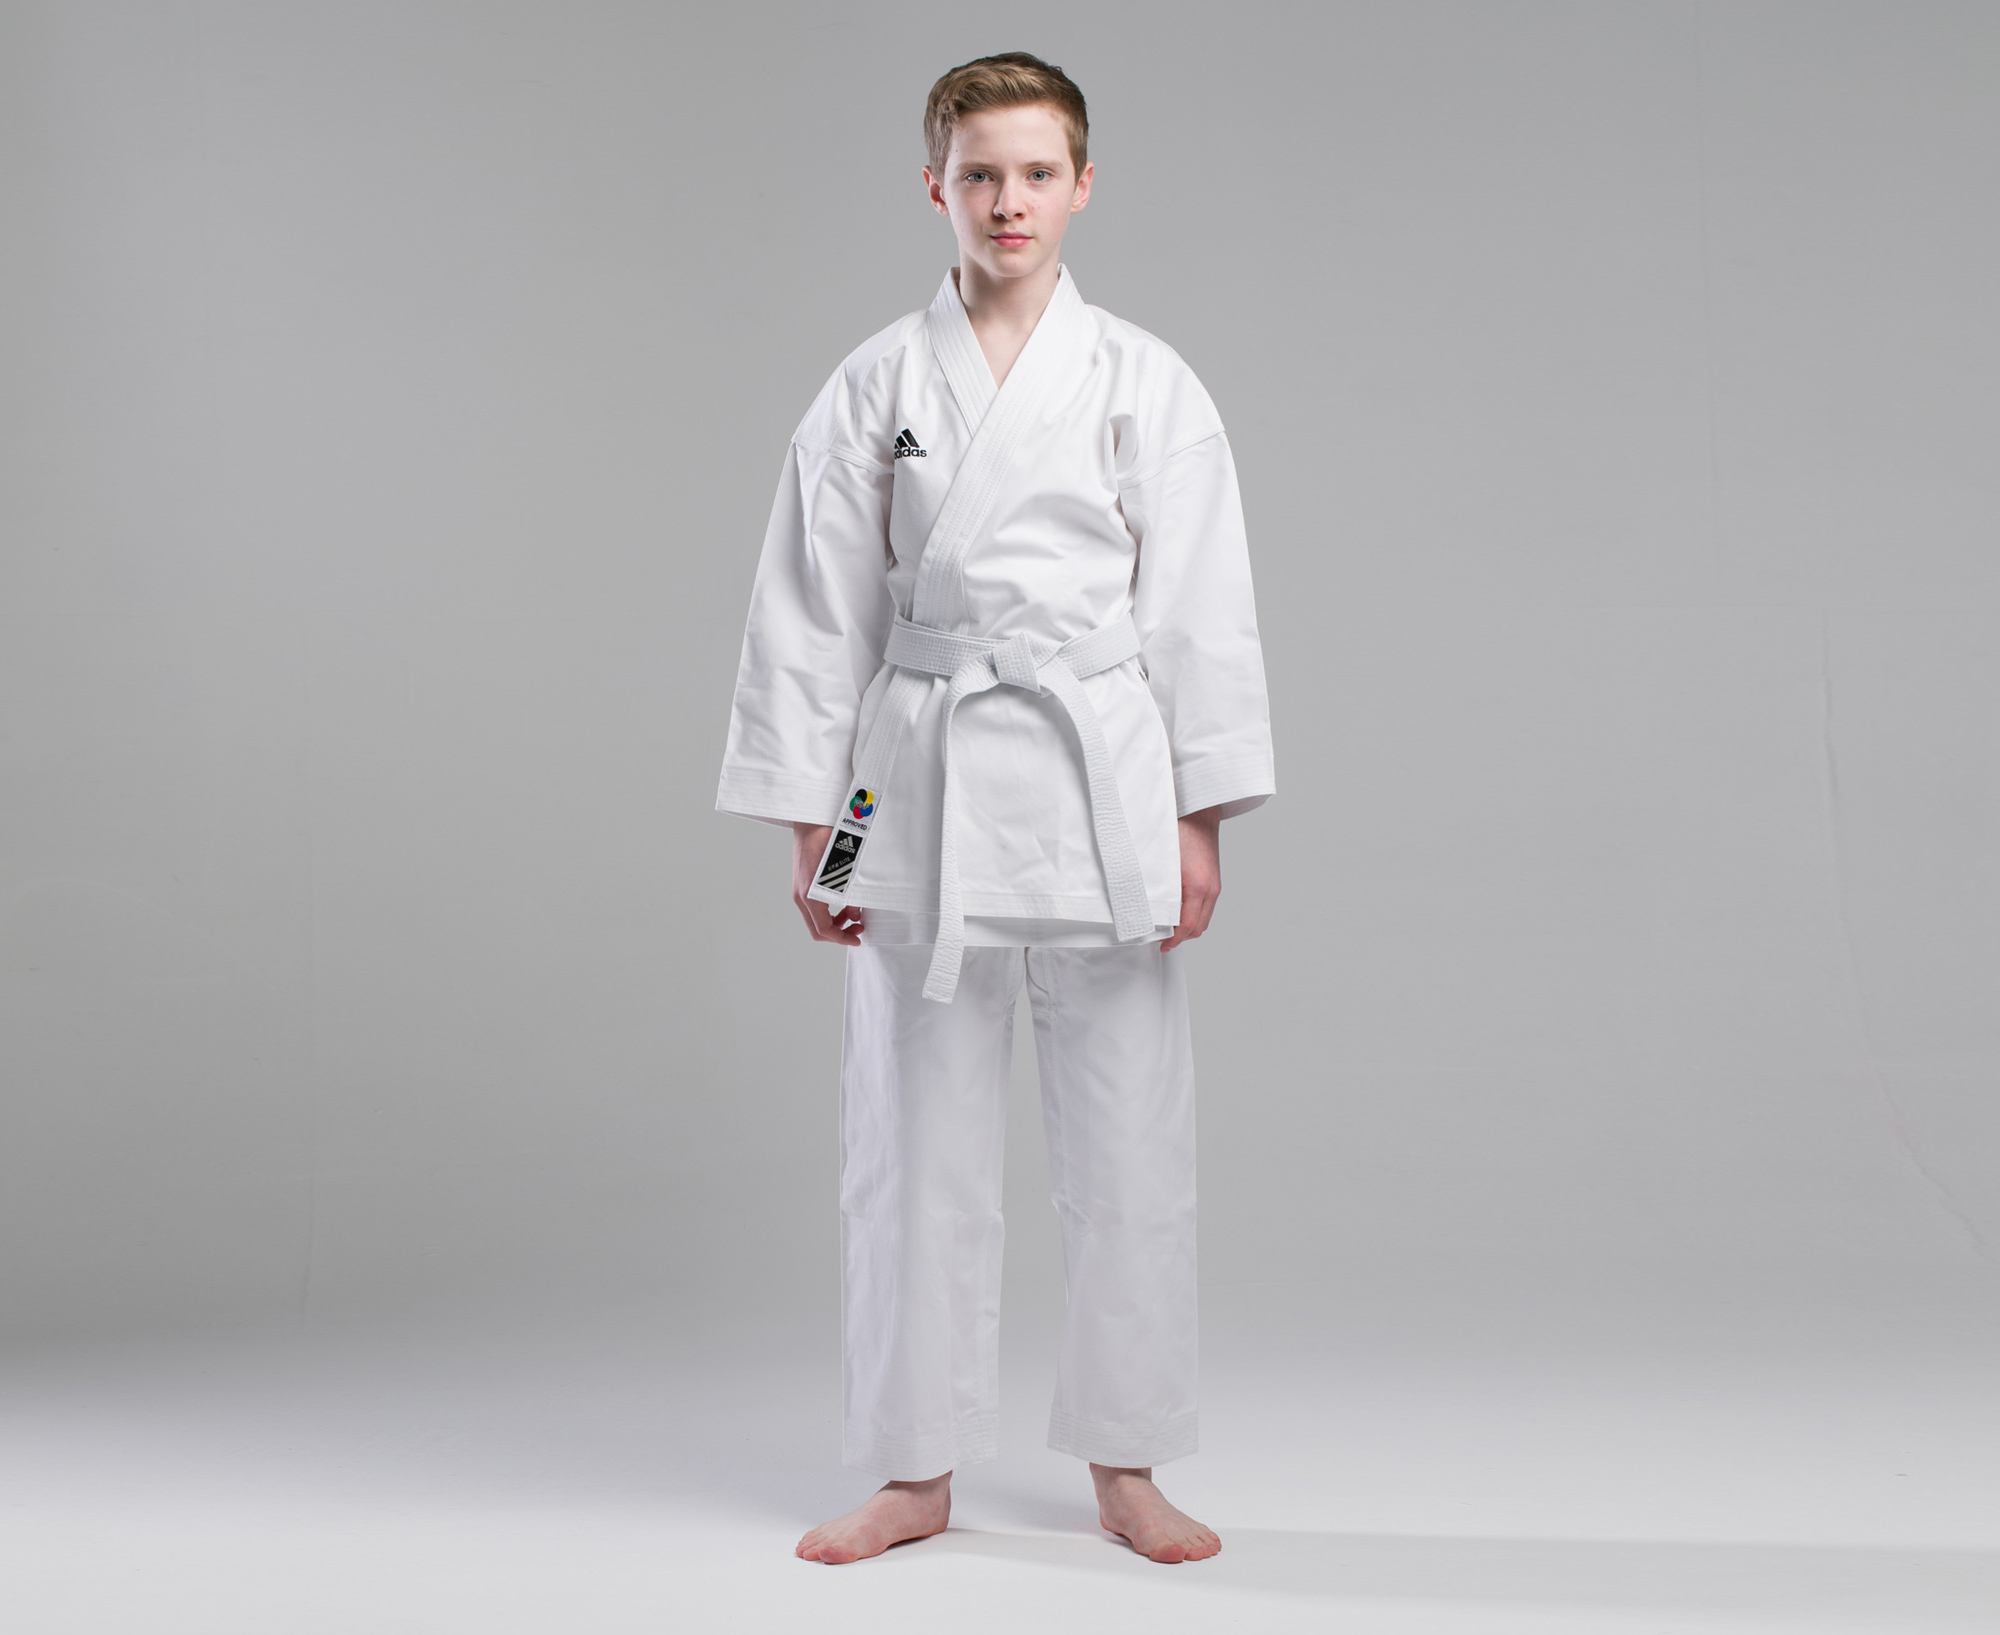 Кимоно КИМОНО ДЛЯ КАРАТЕ ELITE EUROPEAN CUT WKF БЕЛОЕ kimono_dlya_karate_elite_european_cut_wkf_beloe.jpg